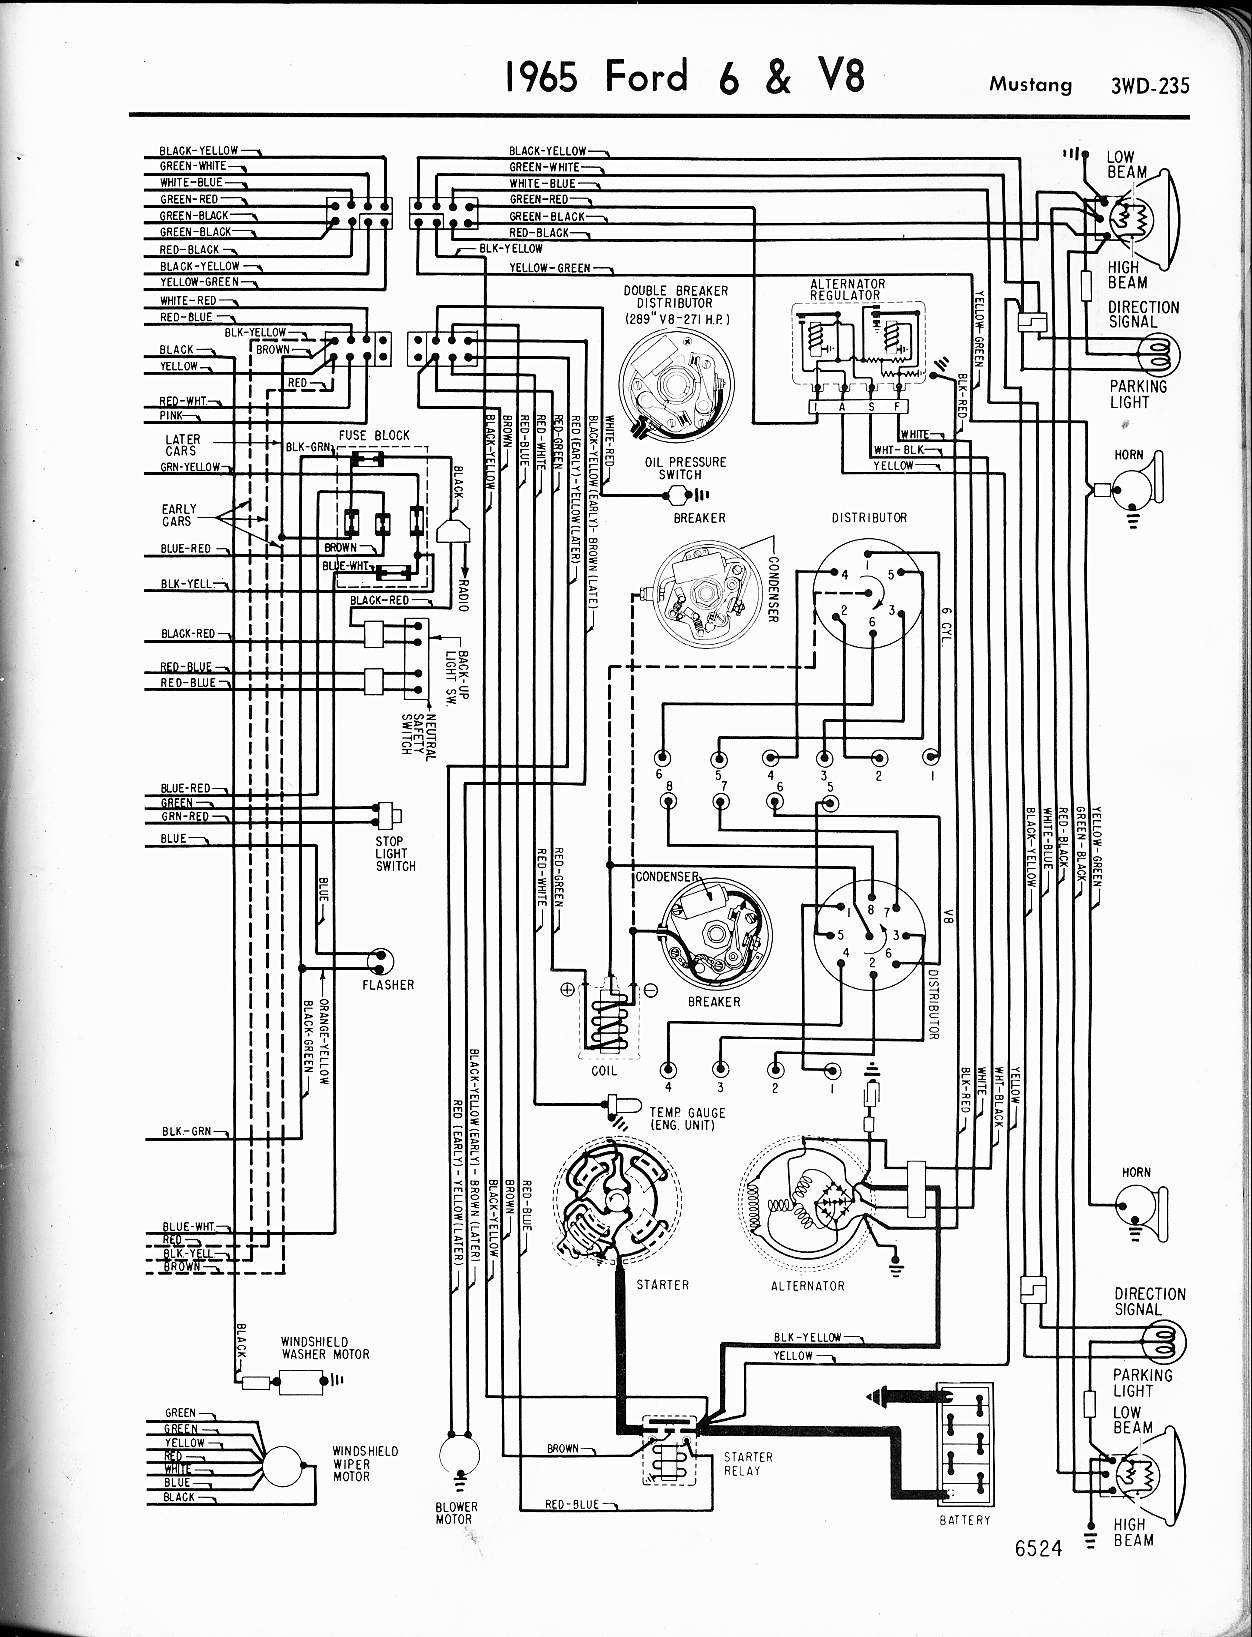 1965_mustang_wiring_2 ford diagrams 1965 mustang wiring diagram pdf at couponss.co